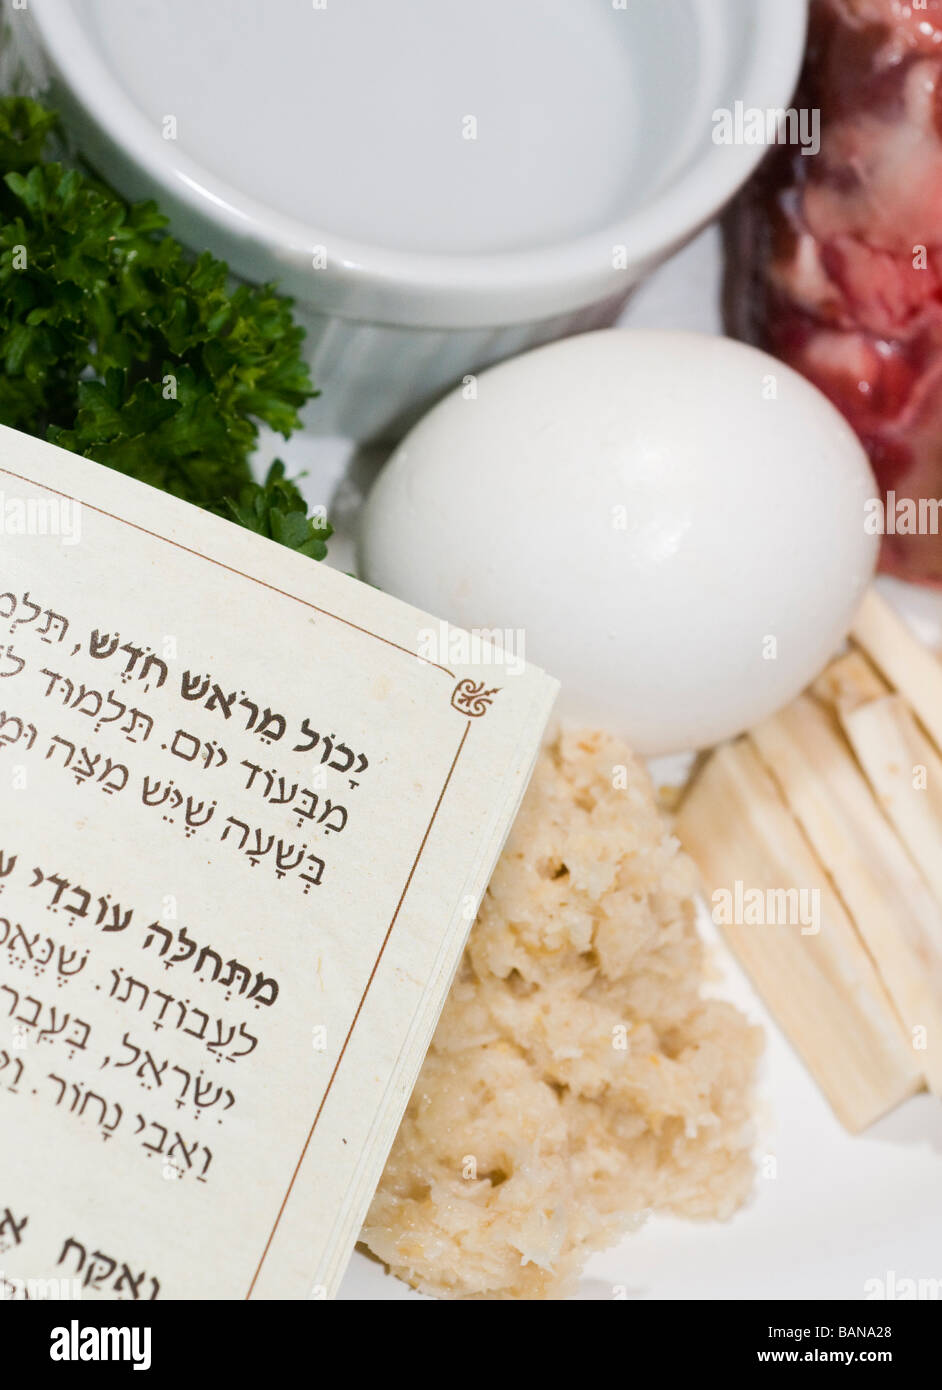 symbolic hebrew pesach passover seder plate for Jewish traditional ceremony dinner - Stock Image